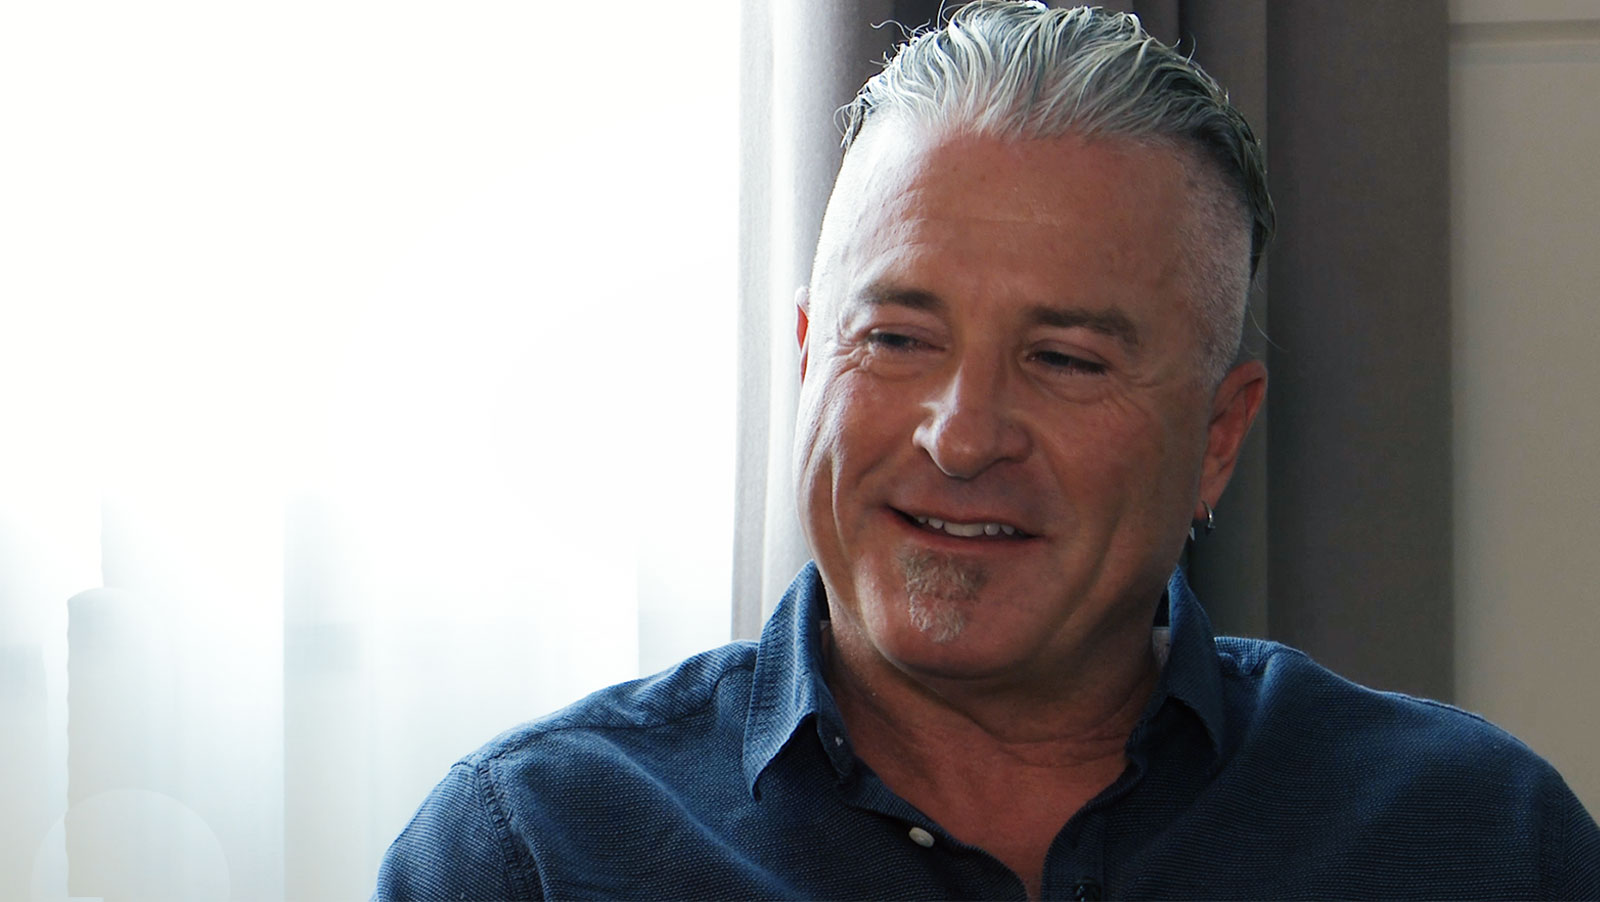 Becky's Affiliated: Calvin Ayre on the brilliance of Bitcoin, London's role and an appeal for Antigua